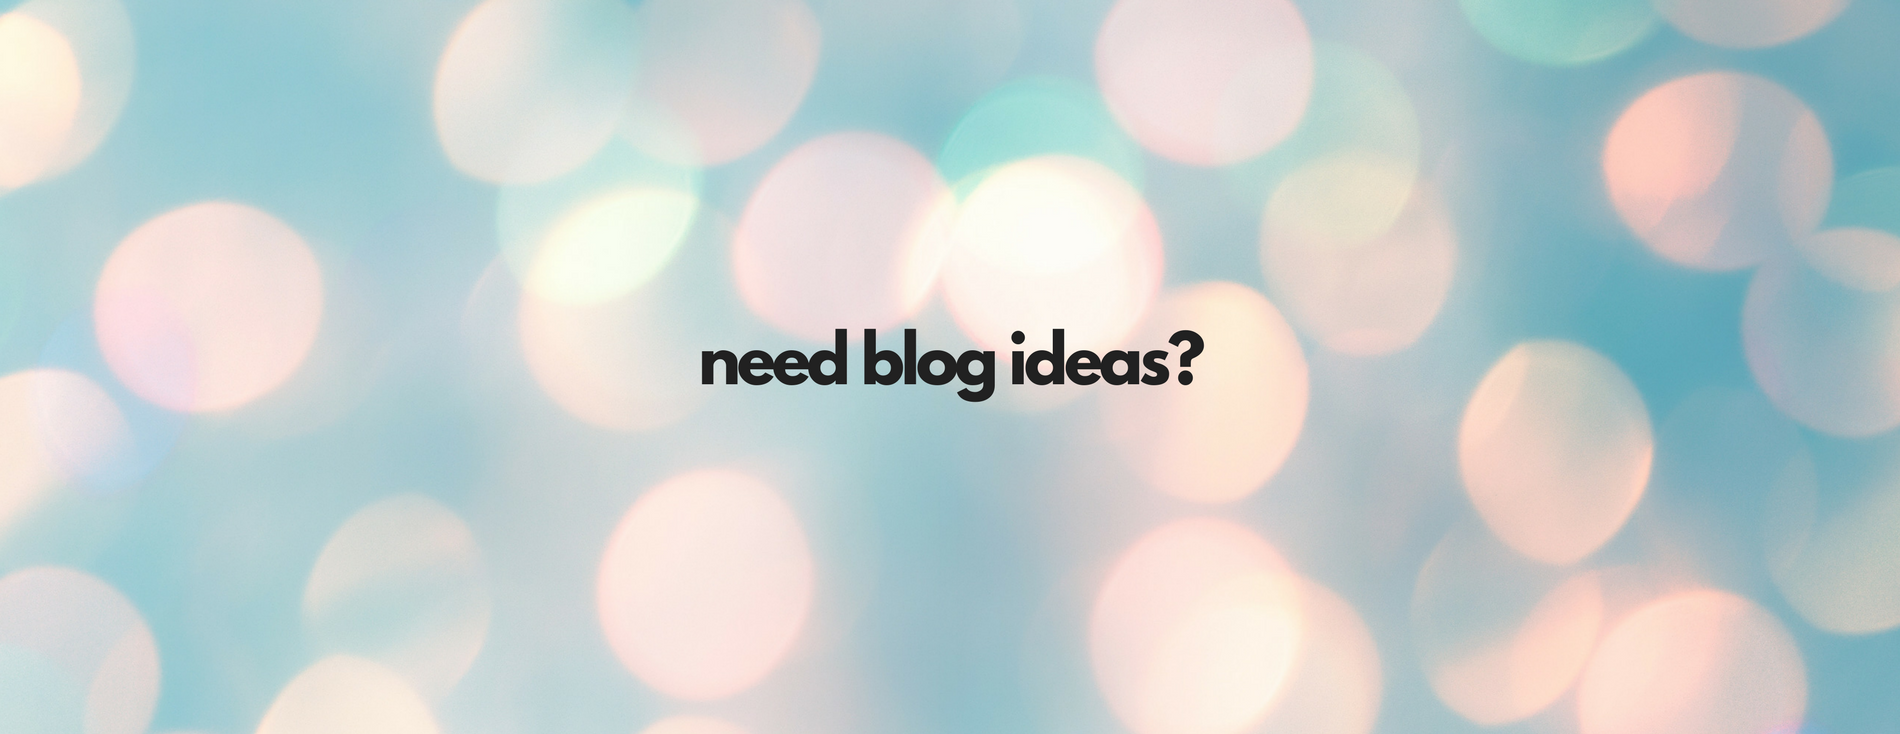 How to Find Blog Ideas